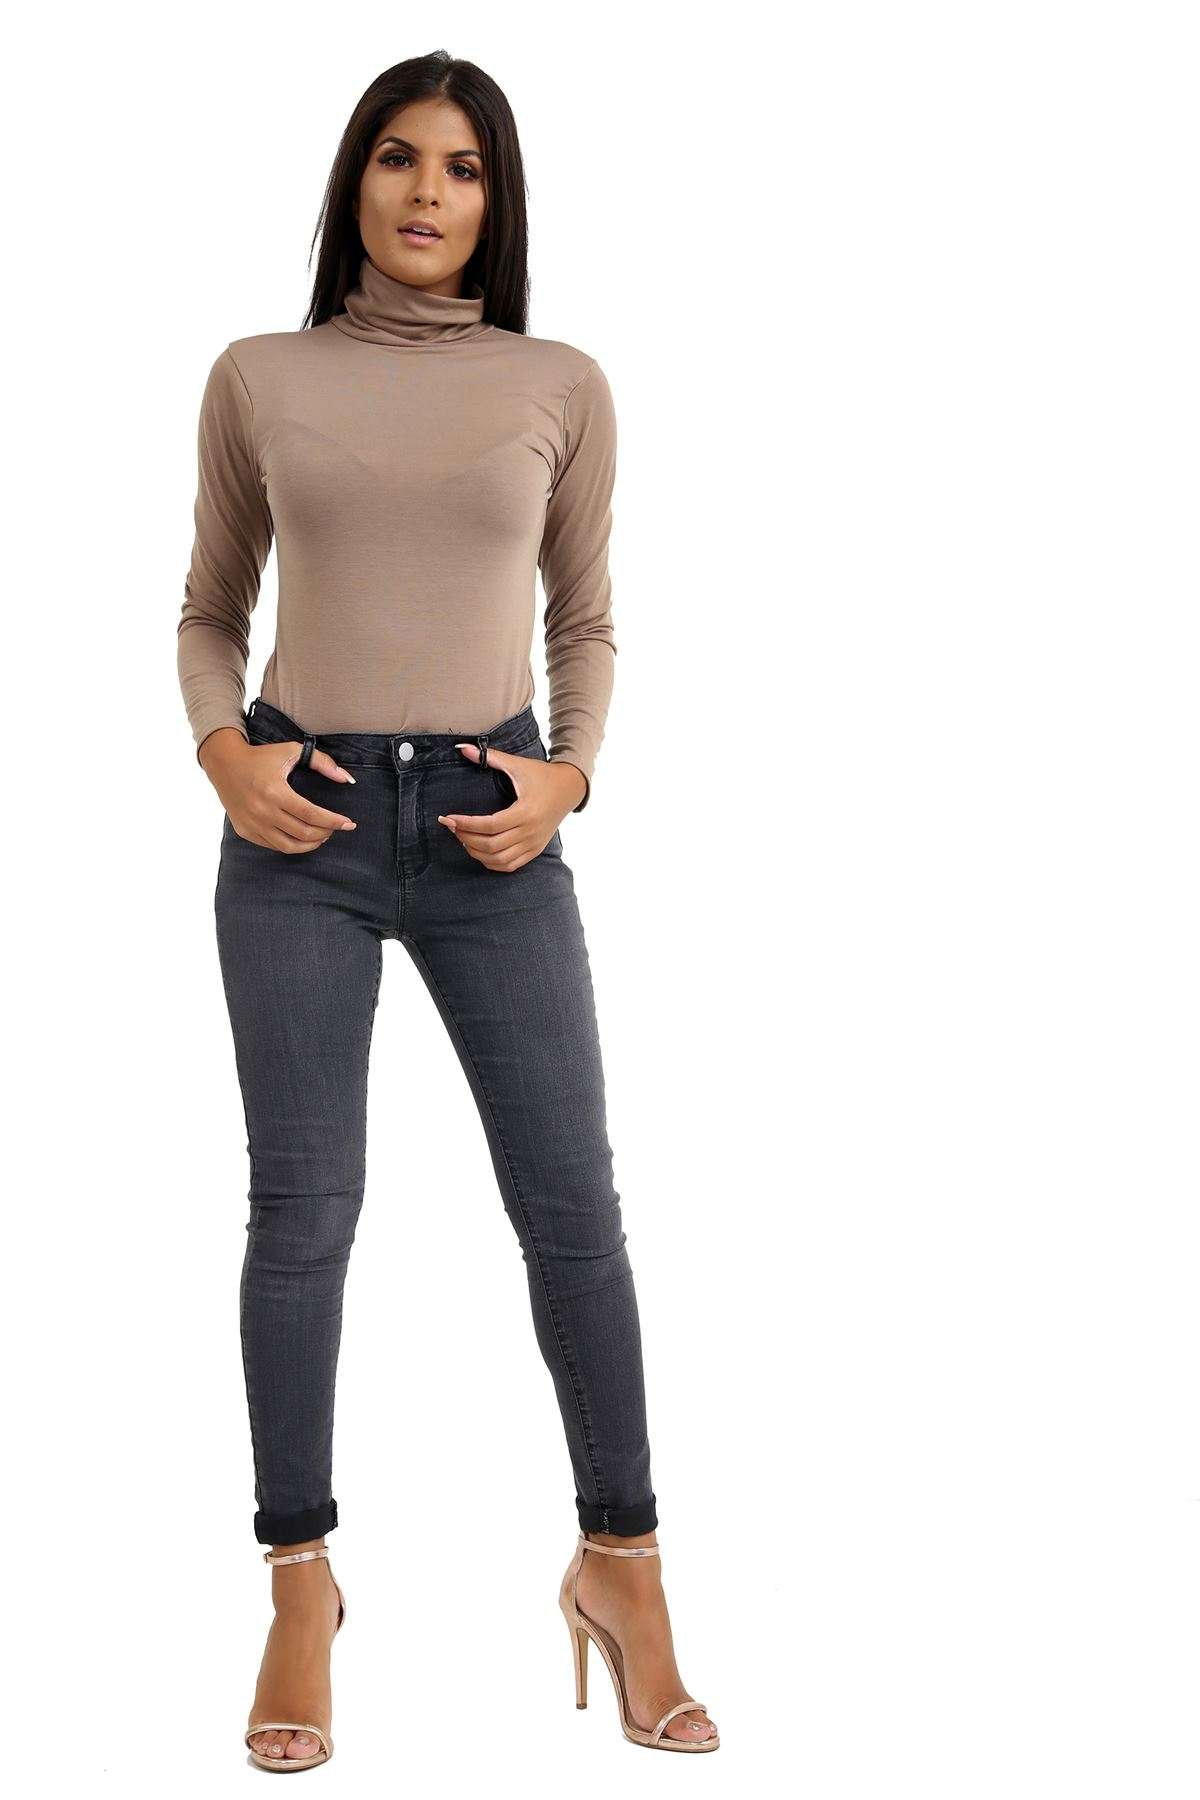 New-Ladies-Long-Sleeve-Plain-Turtle-Polo-Roll-Neck-Stretch-Jumper-T-Shirt-TeeTop thumbnail 69